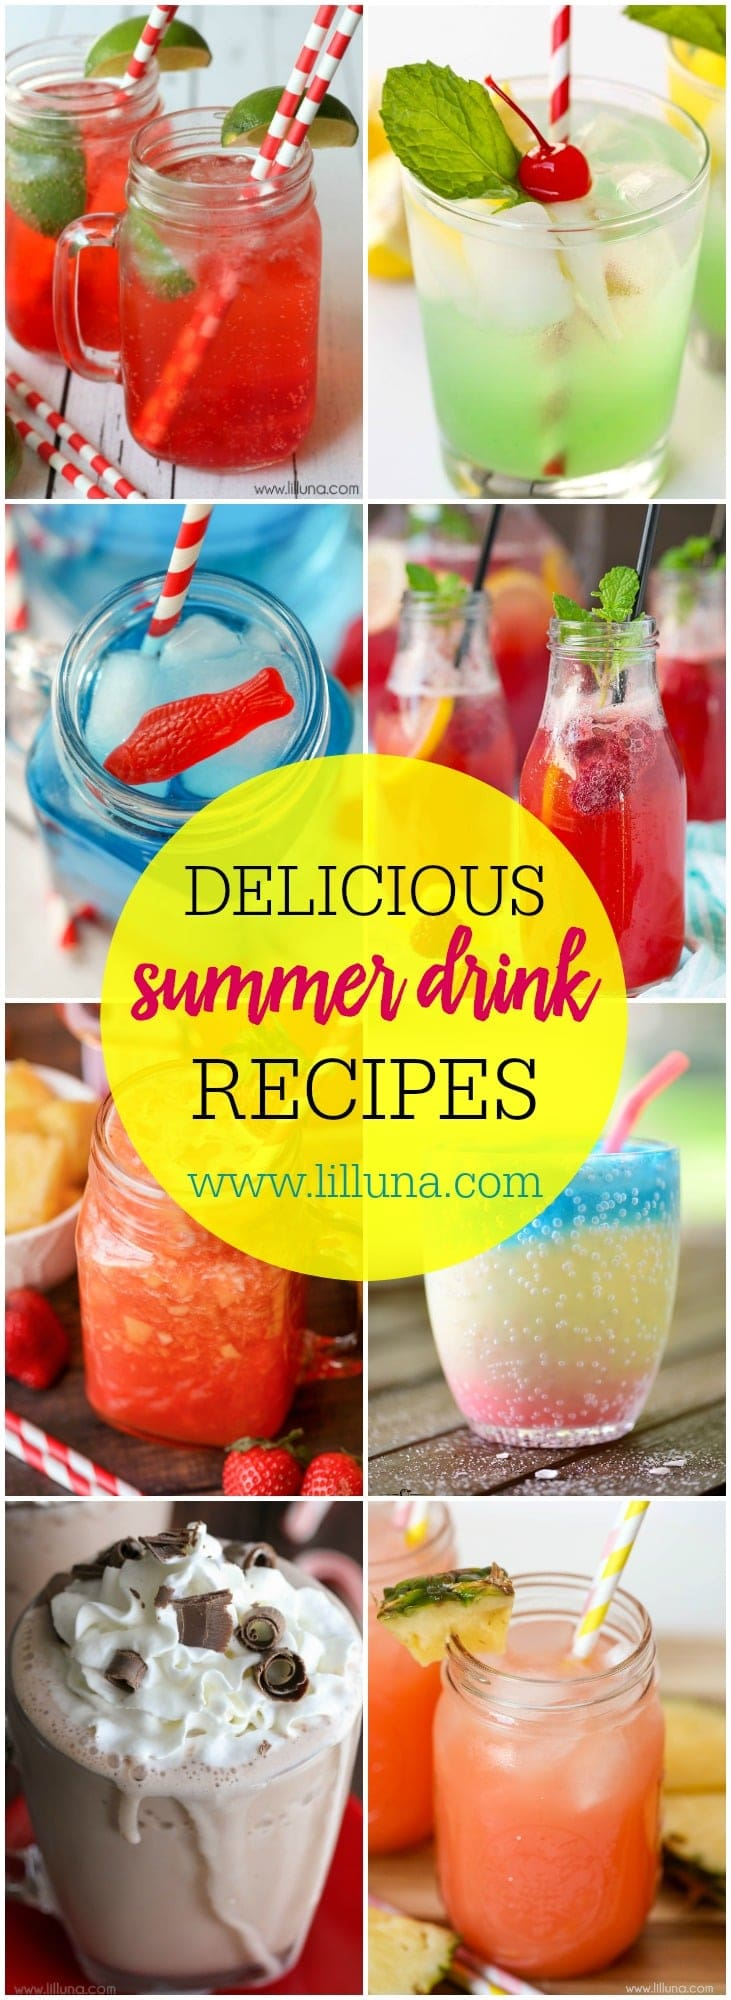 A delicious and cool collection of Summer Drink Recipes perfect to try out on a hot, summer day, all of which are kid-friendly!